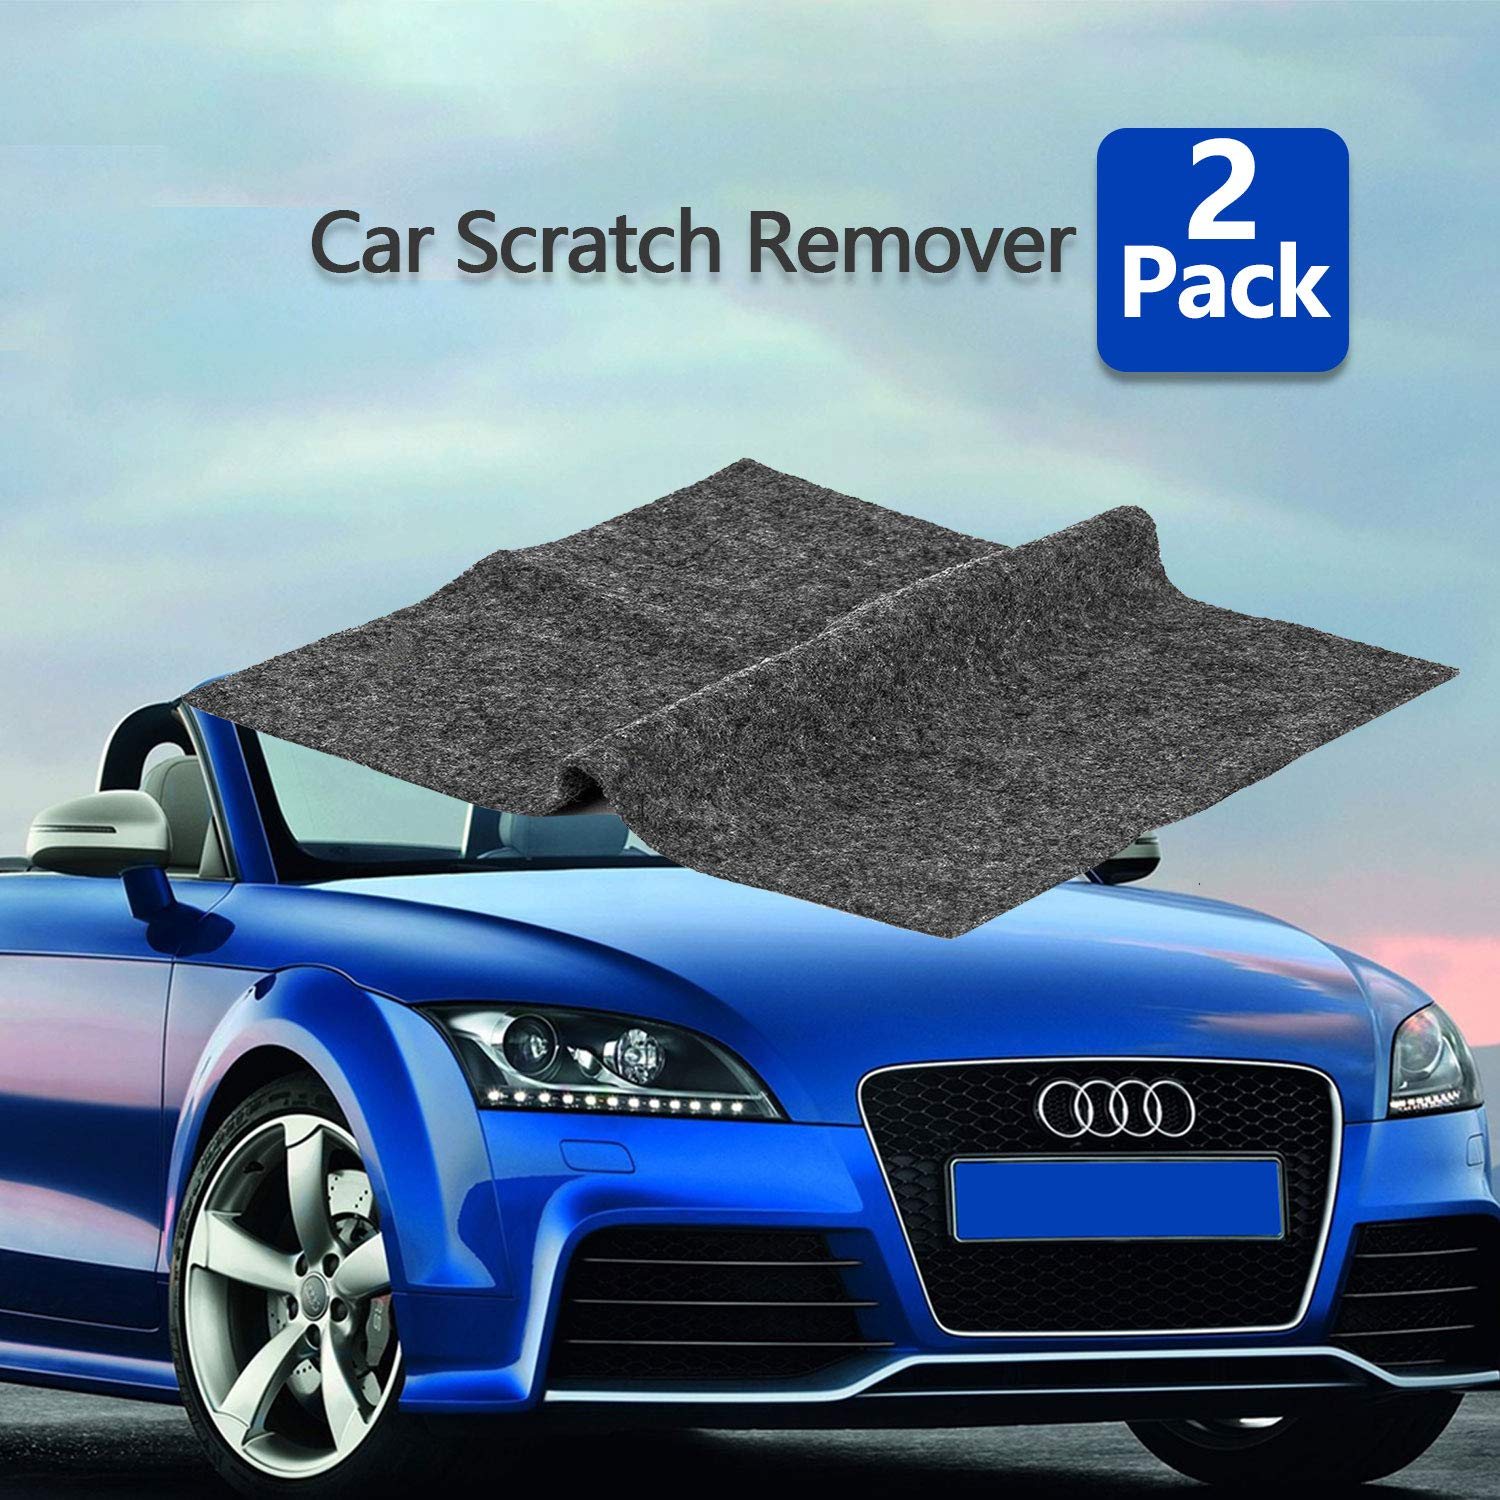 [2pack] Multipurpose Scratch Removal for Cars ,Car Paint Scratch Repair Cloth,Car Scuff and Scratch Remover Nano-Tech Magic Scratch Remover Fix Car Scuffs Polishing Kit for Multicolor Car Surface